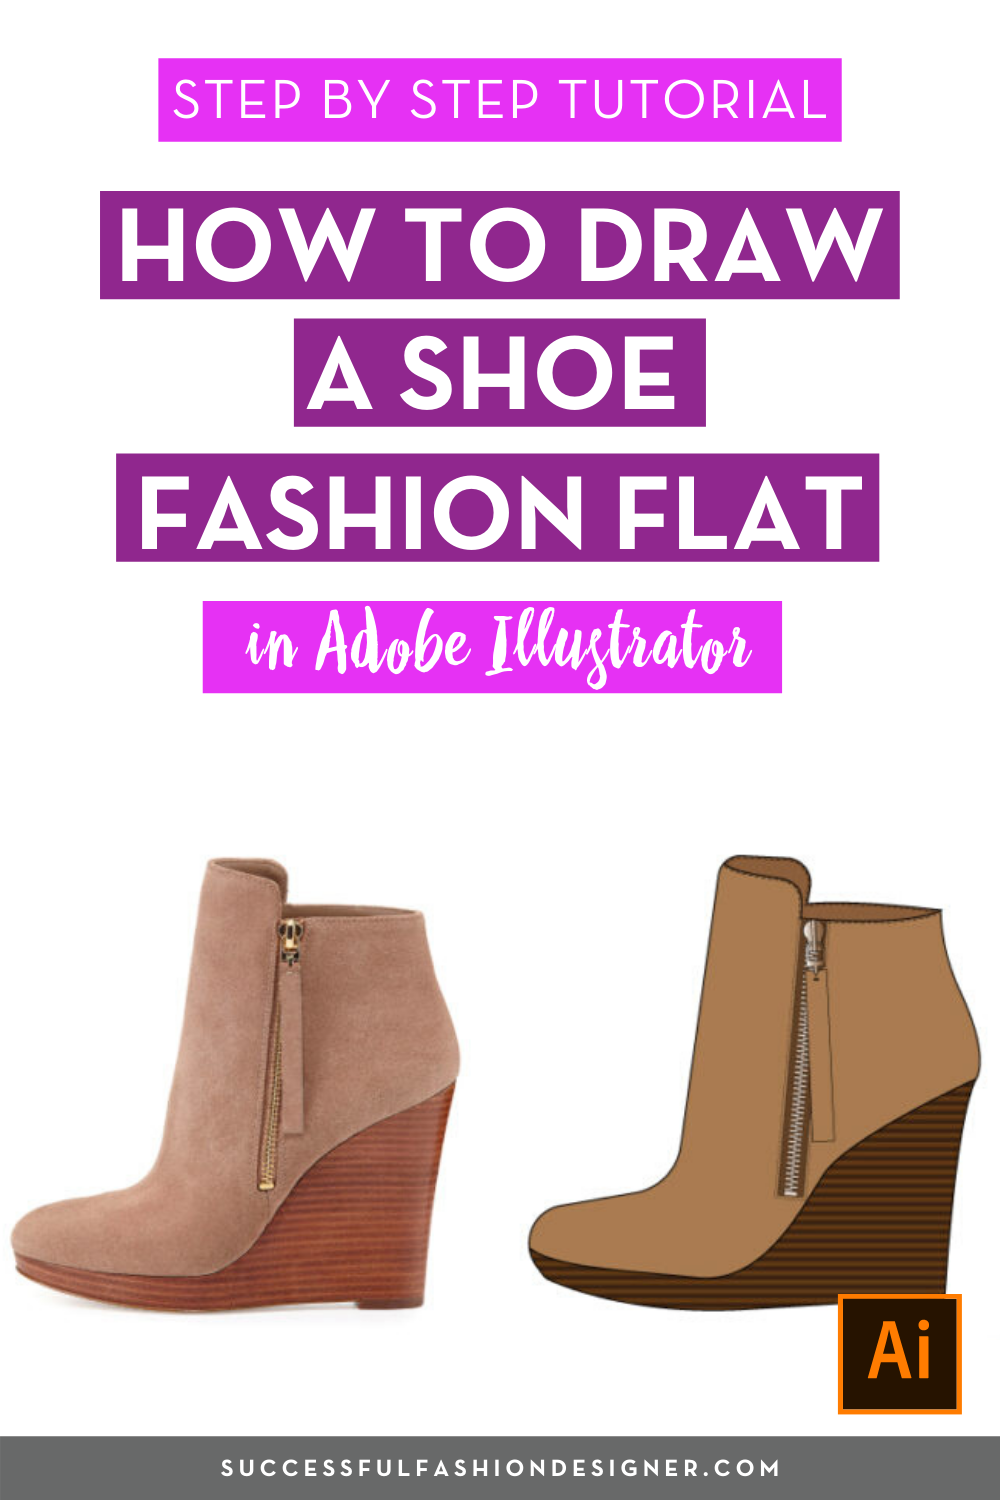 How To Draw A Shoe Fashion Flat In Illustrator Courses Free Tutorials On Adobe Illustrator Tech Packs Freelancing For Fashion Designers Fashion Design Jobs Fashion Flats Fashion Shoes